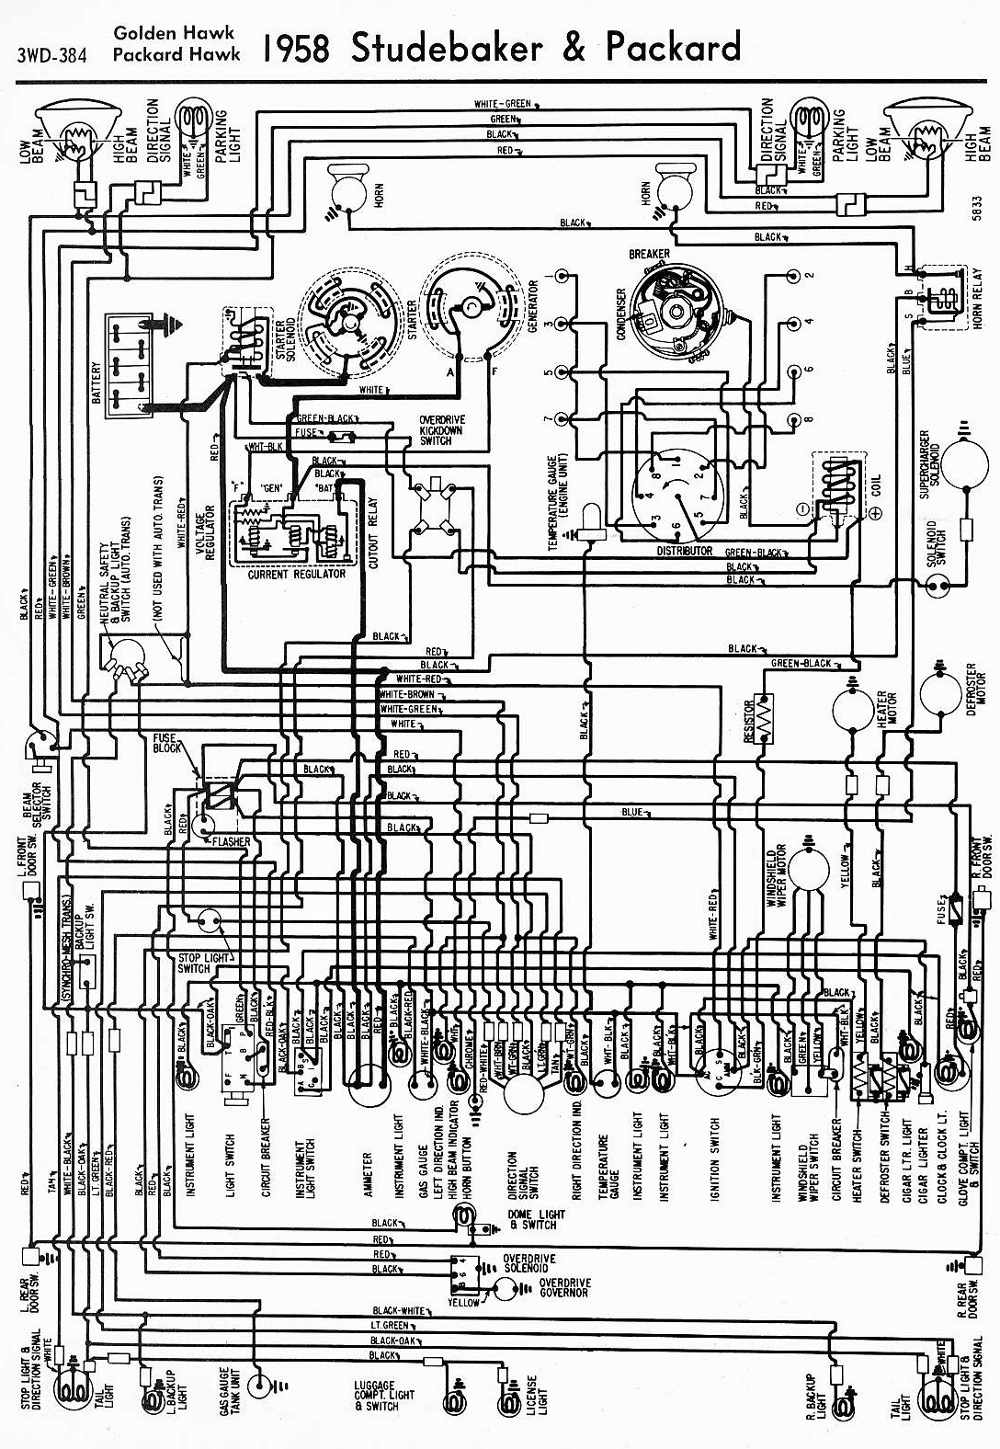 Wiring Diagrams 911: 1958 Studebaker and Packard Golden